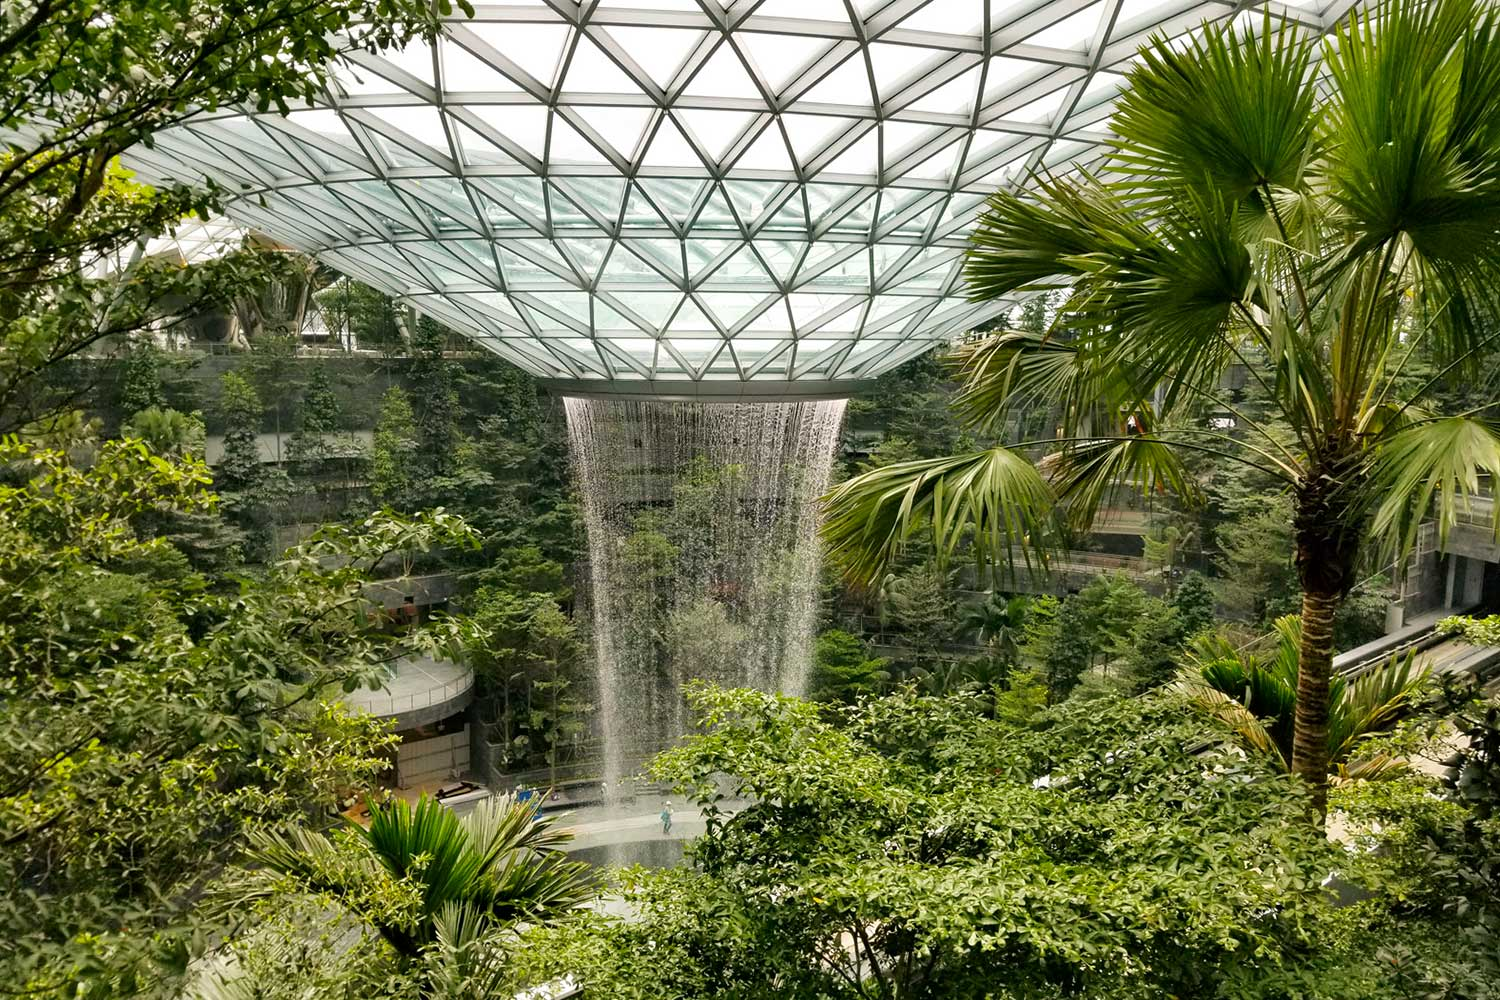 Jewel Changi Airport's indoor waterfall, viewed through the building's trees and greenery